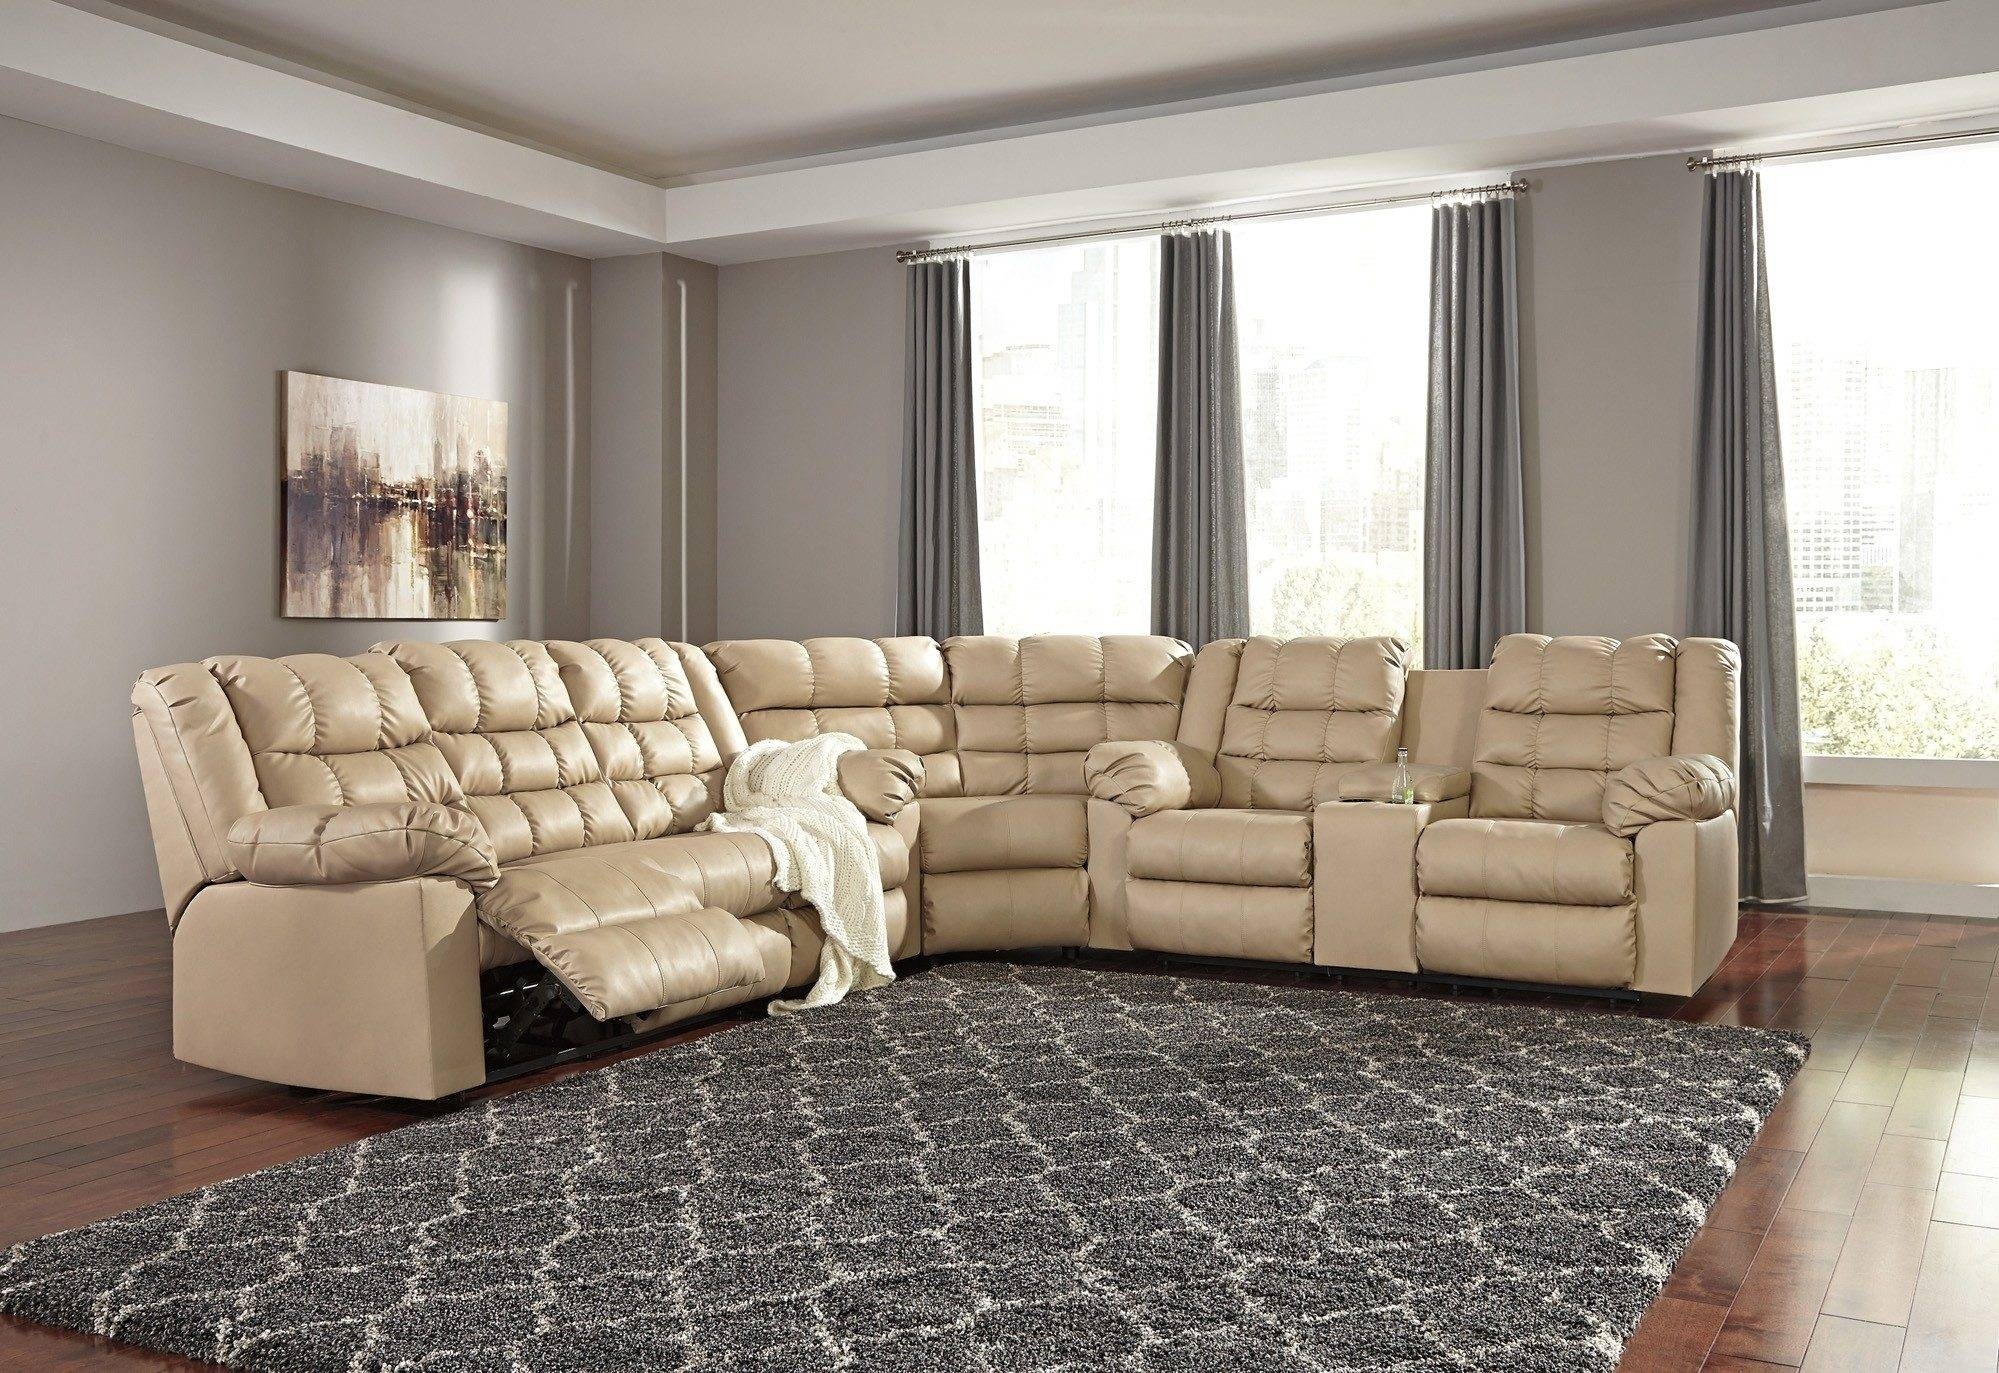 Astonishing 3 Piece Sectional Sofa With Recliner 35 For Your intended for Sectional Sofas Portland (Image 3 of 30)